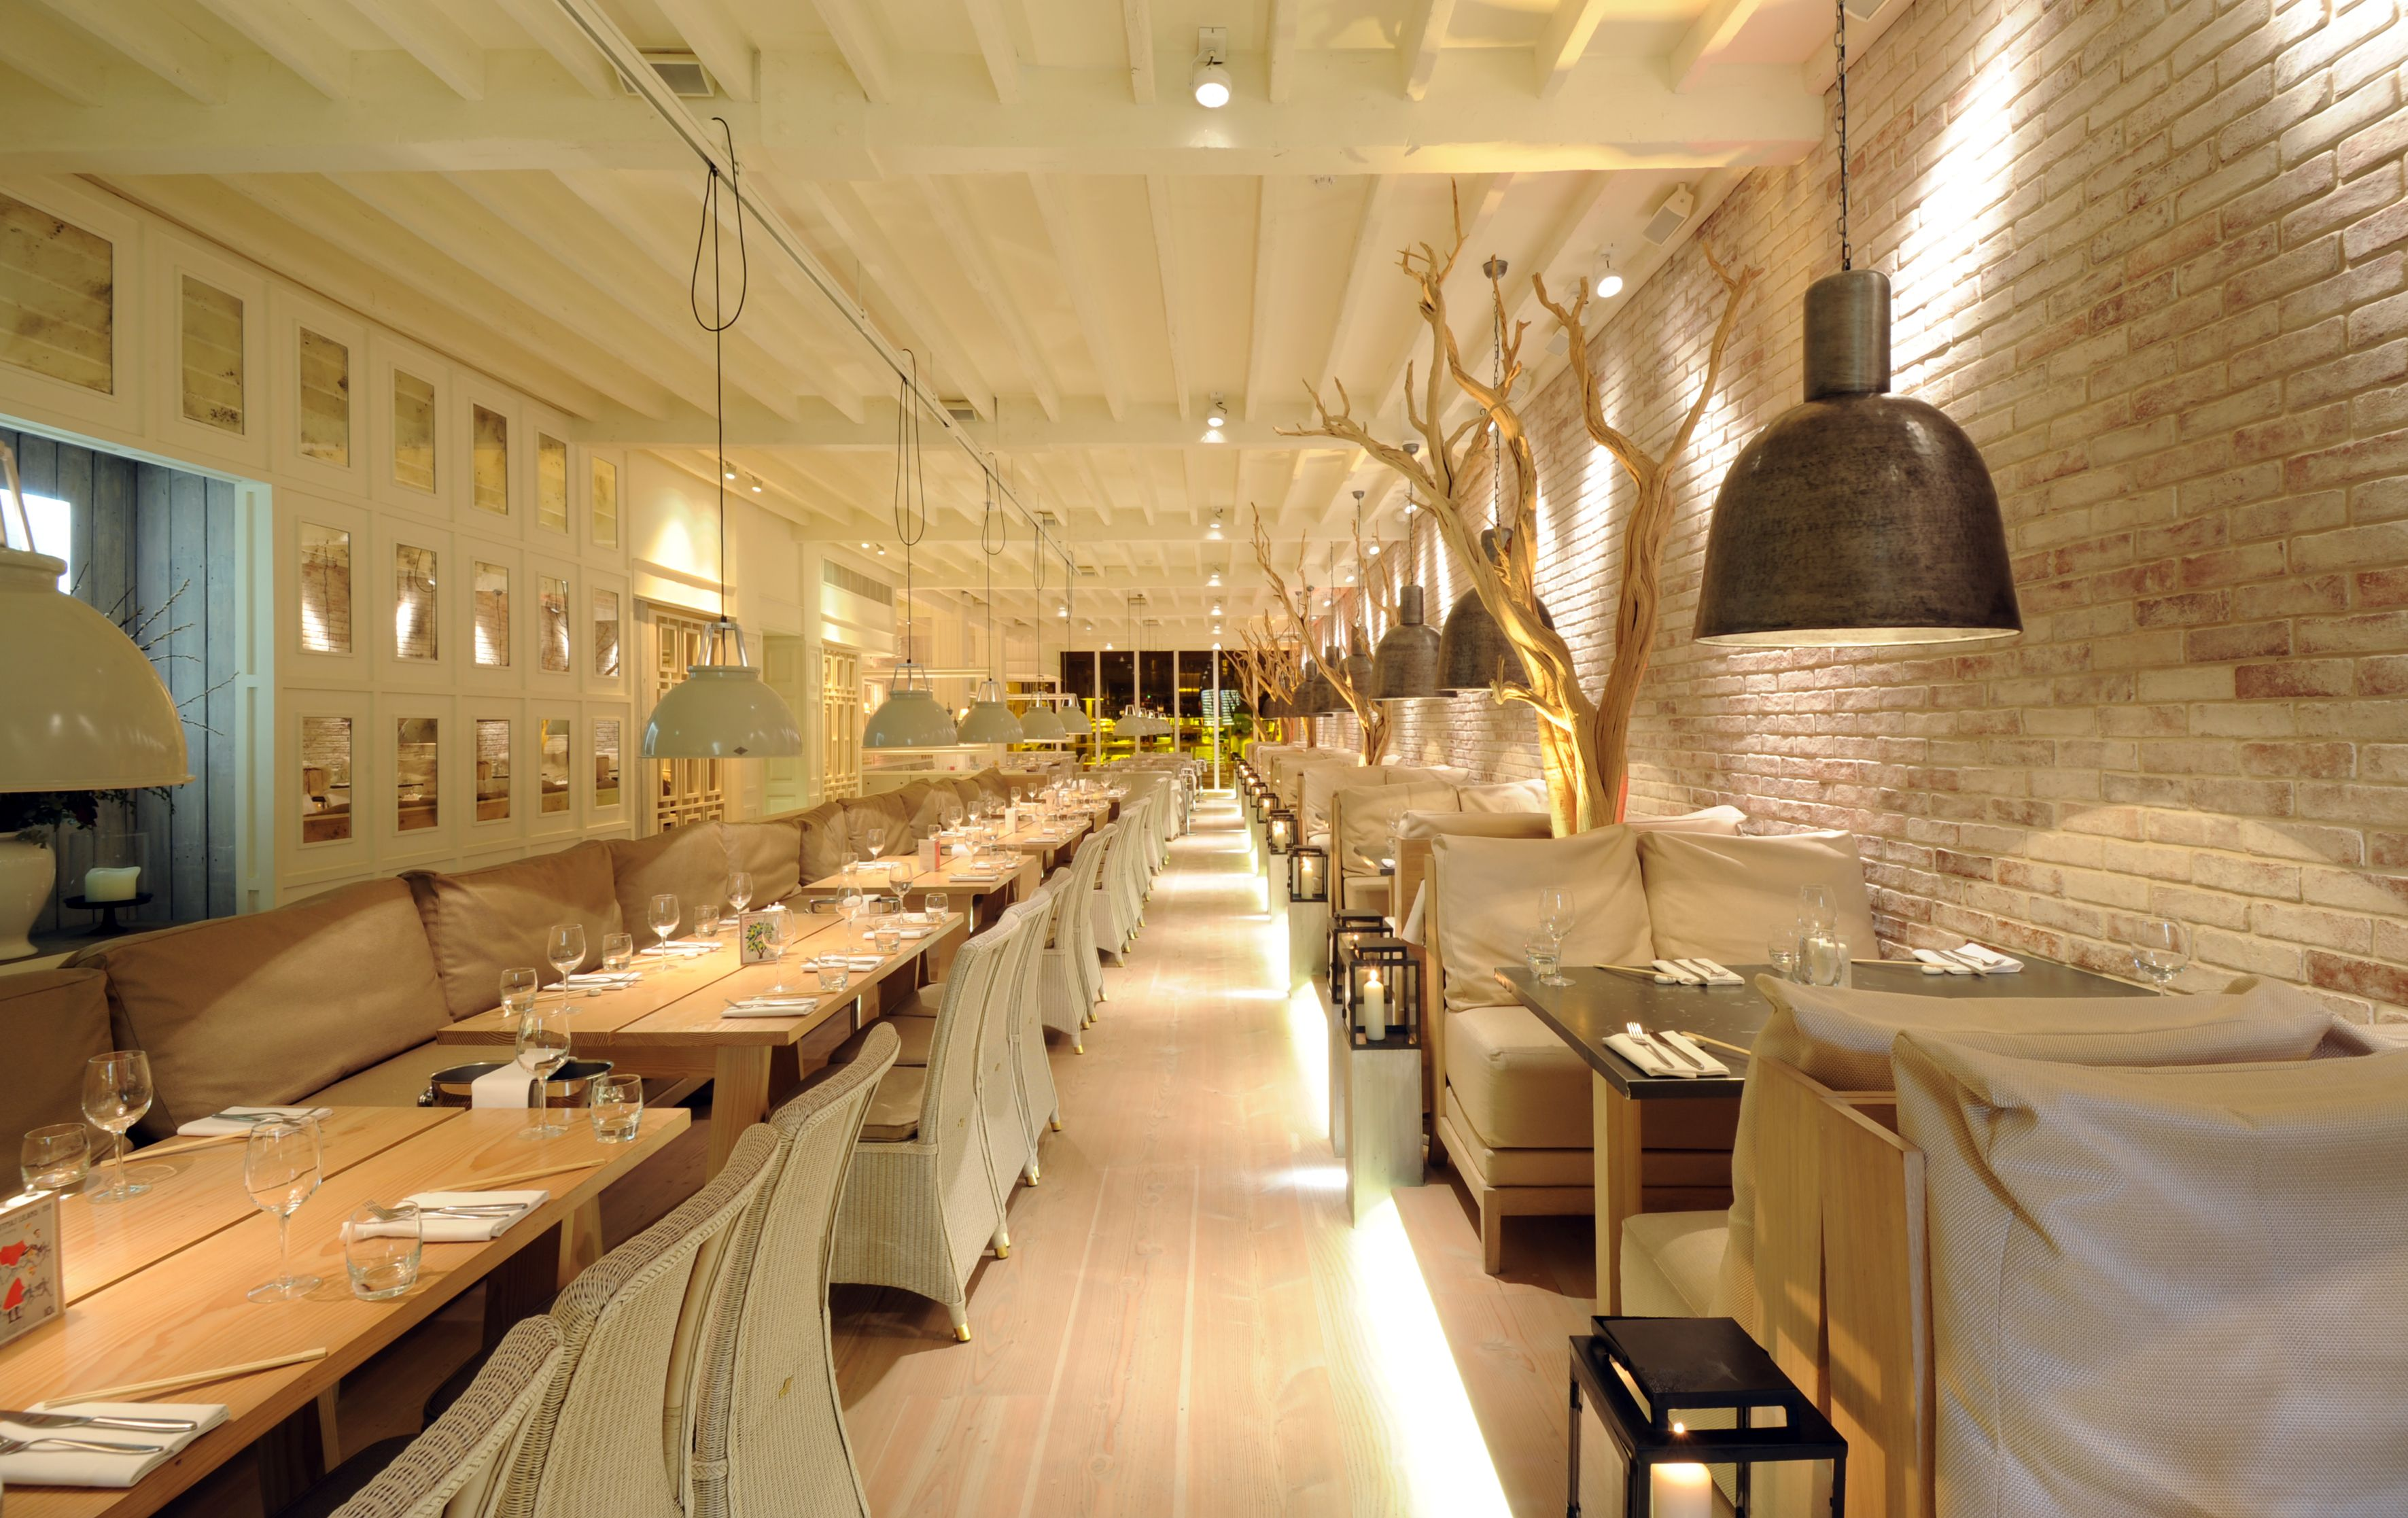 australasia in manchester, uk with dinesen douglas flooring